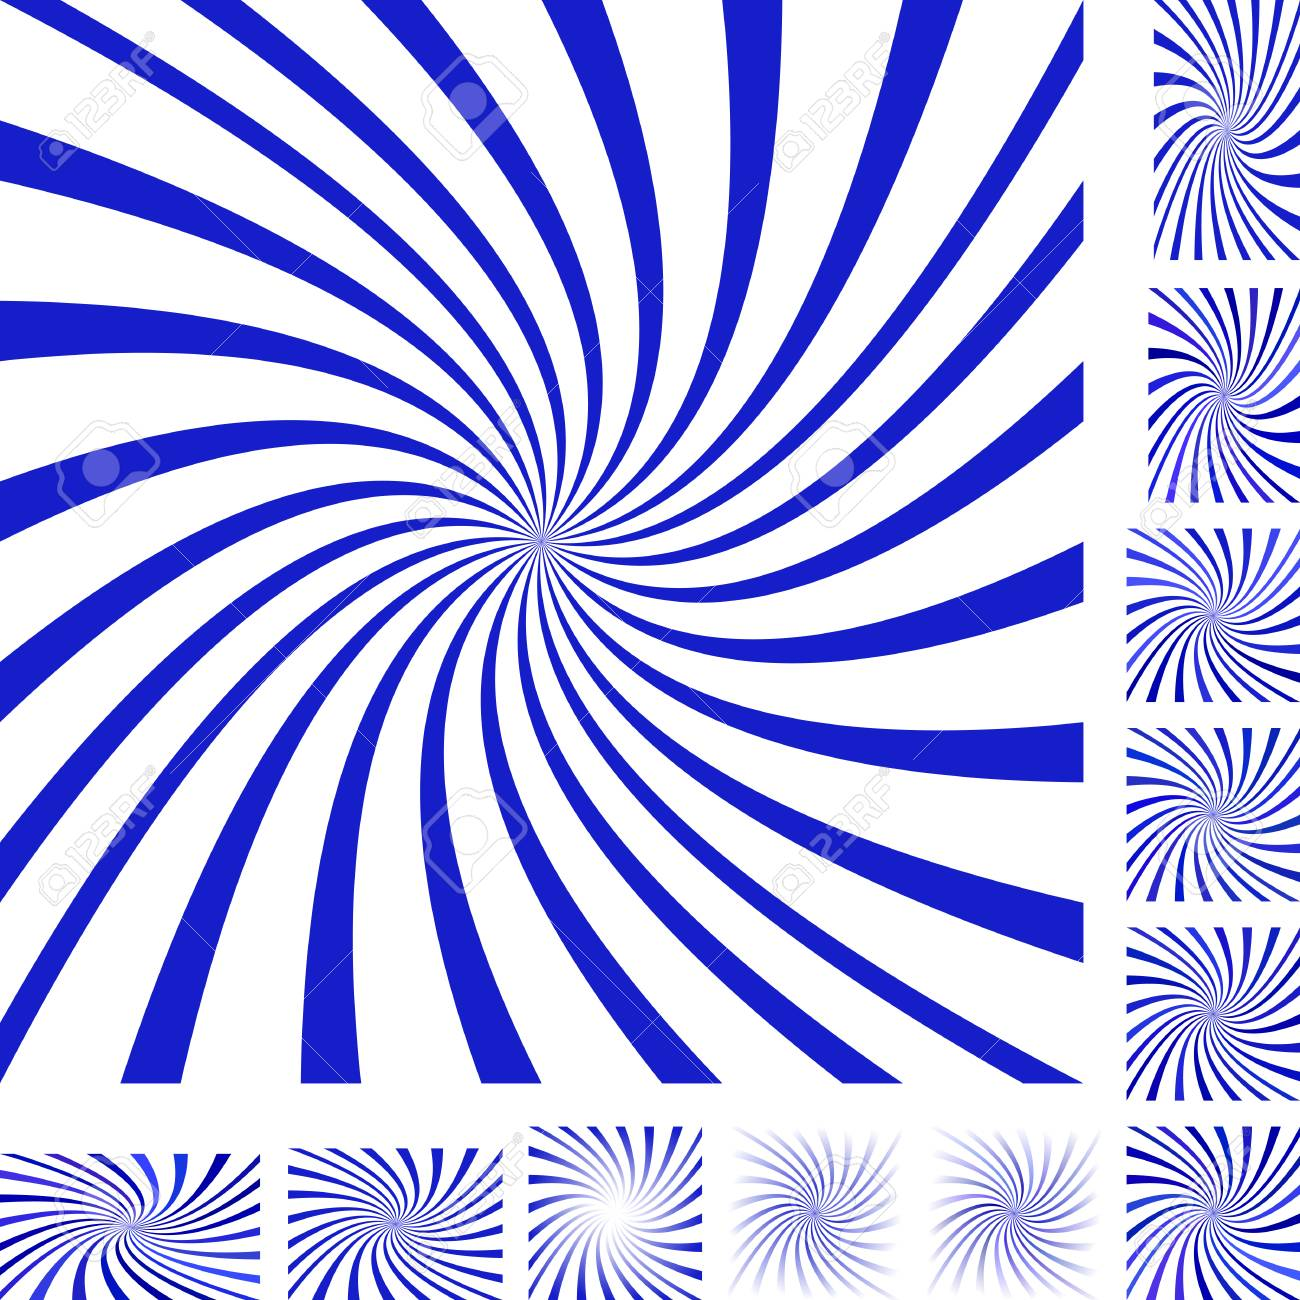 Blue And White Vector Spiral Design Background Set. Different ...